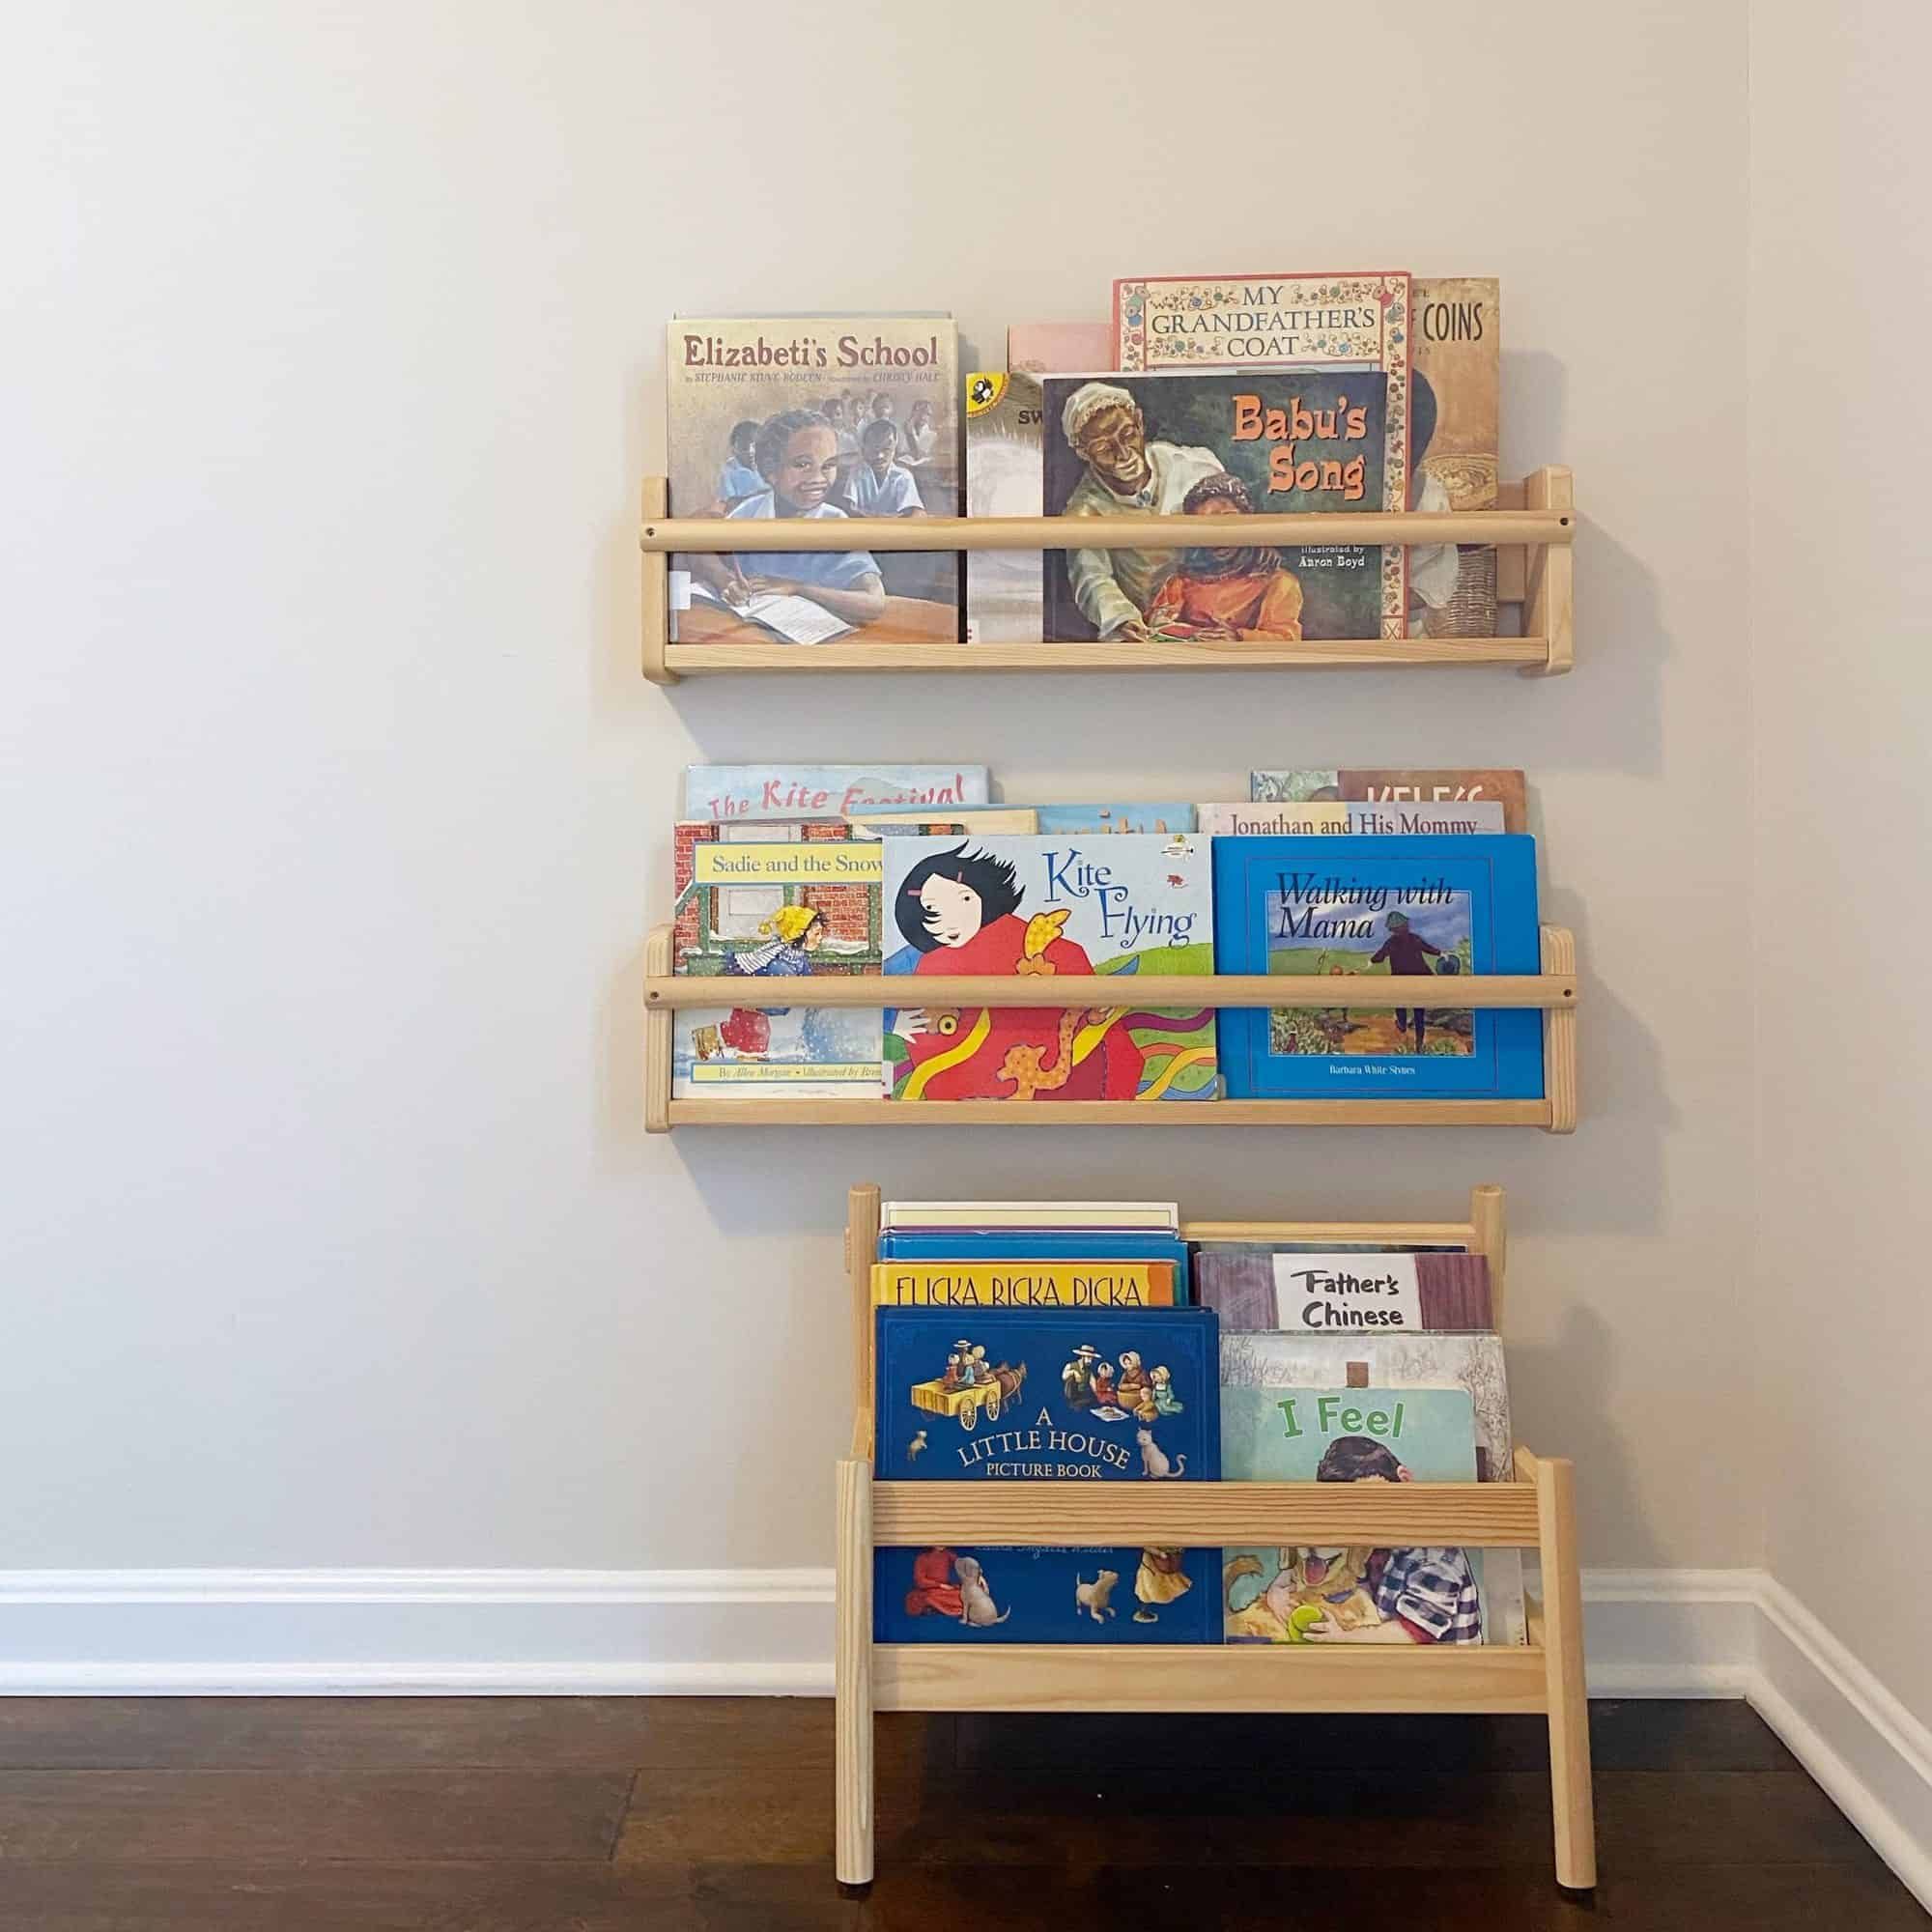 IKEA's FLISAT Wall Display Shelves and FLISAT Book Bin are used to create a small reading nook for children in a Montessori-inspired bedroom. #raisingreaders #earlyliteracy #booknook #montessori #montessoriathome #bookdisplay